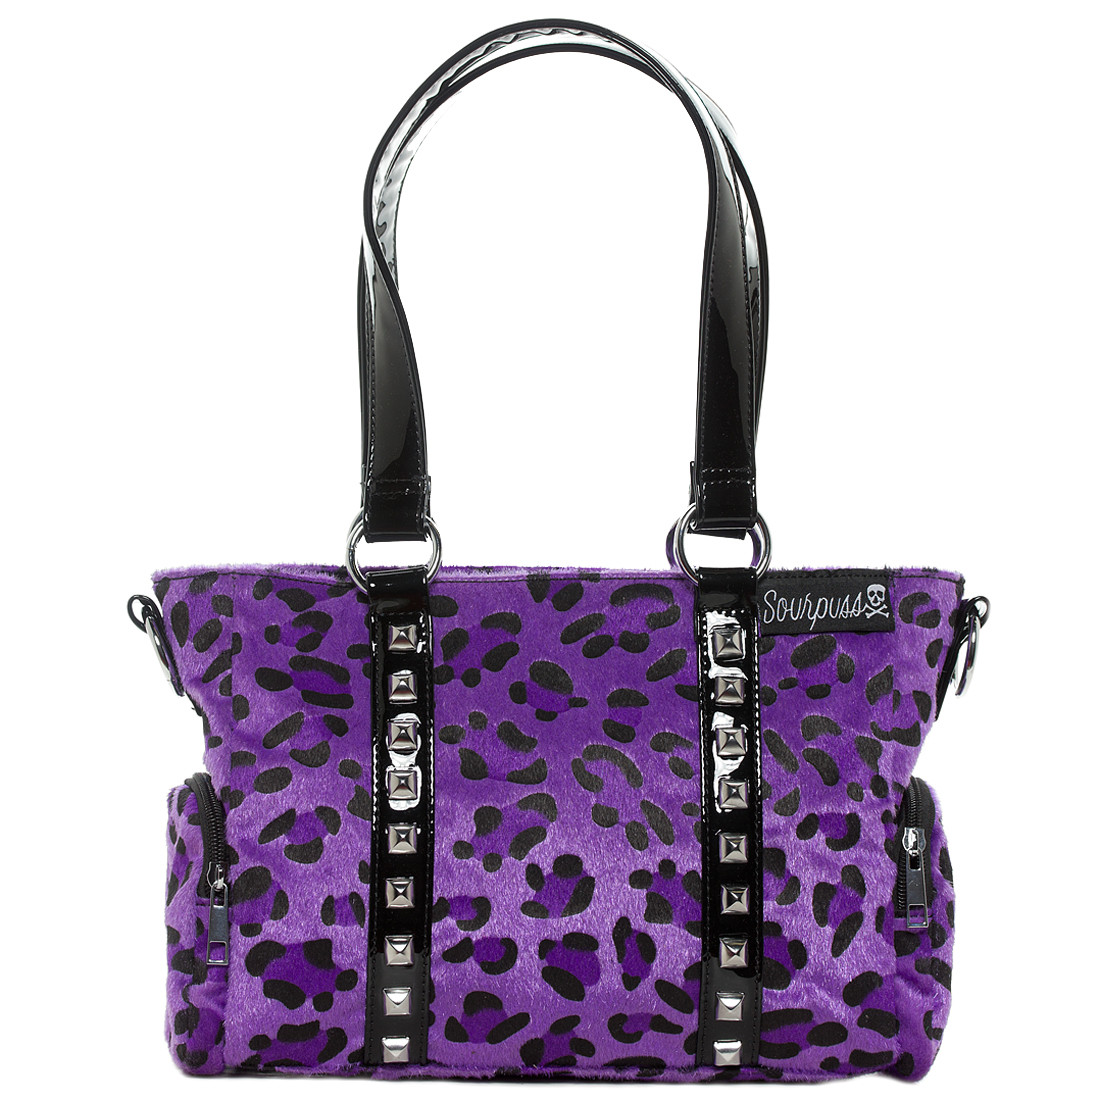 Sourpuss Purse Mini Leda Purple Leopard Stud Crossbody Shoulder Bag